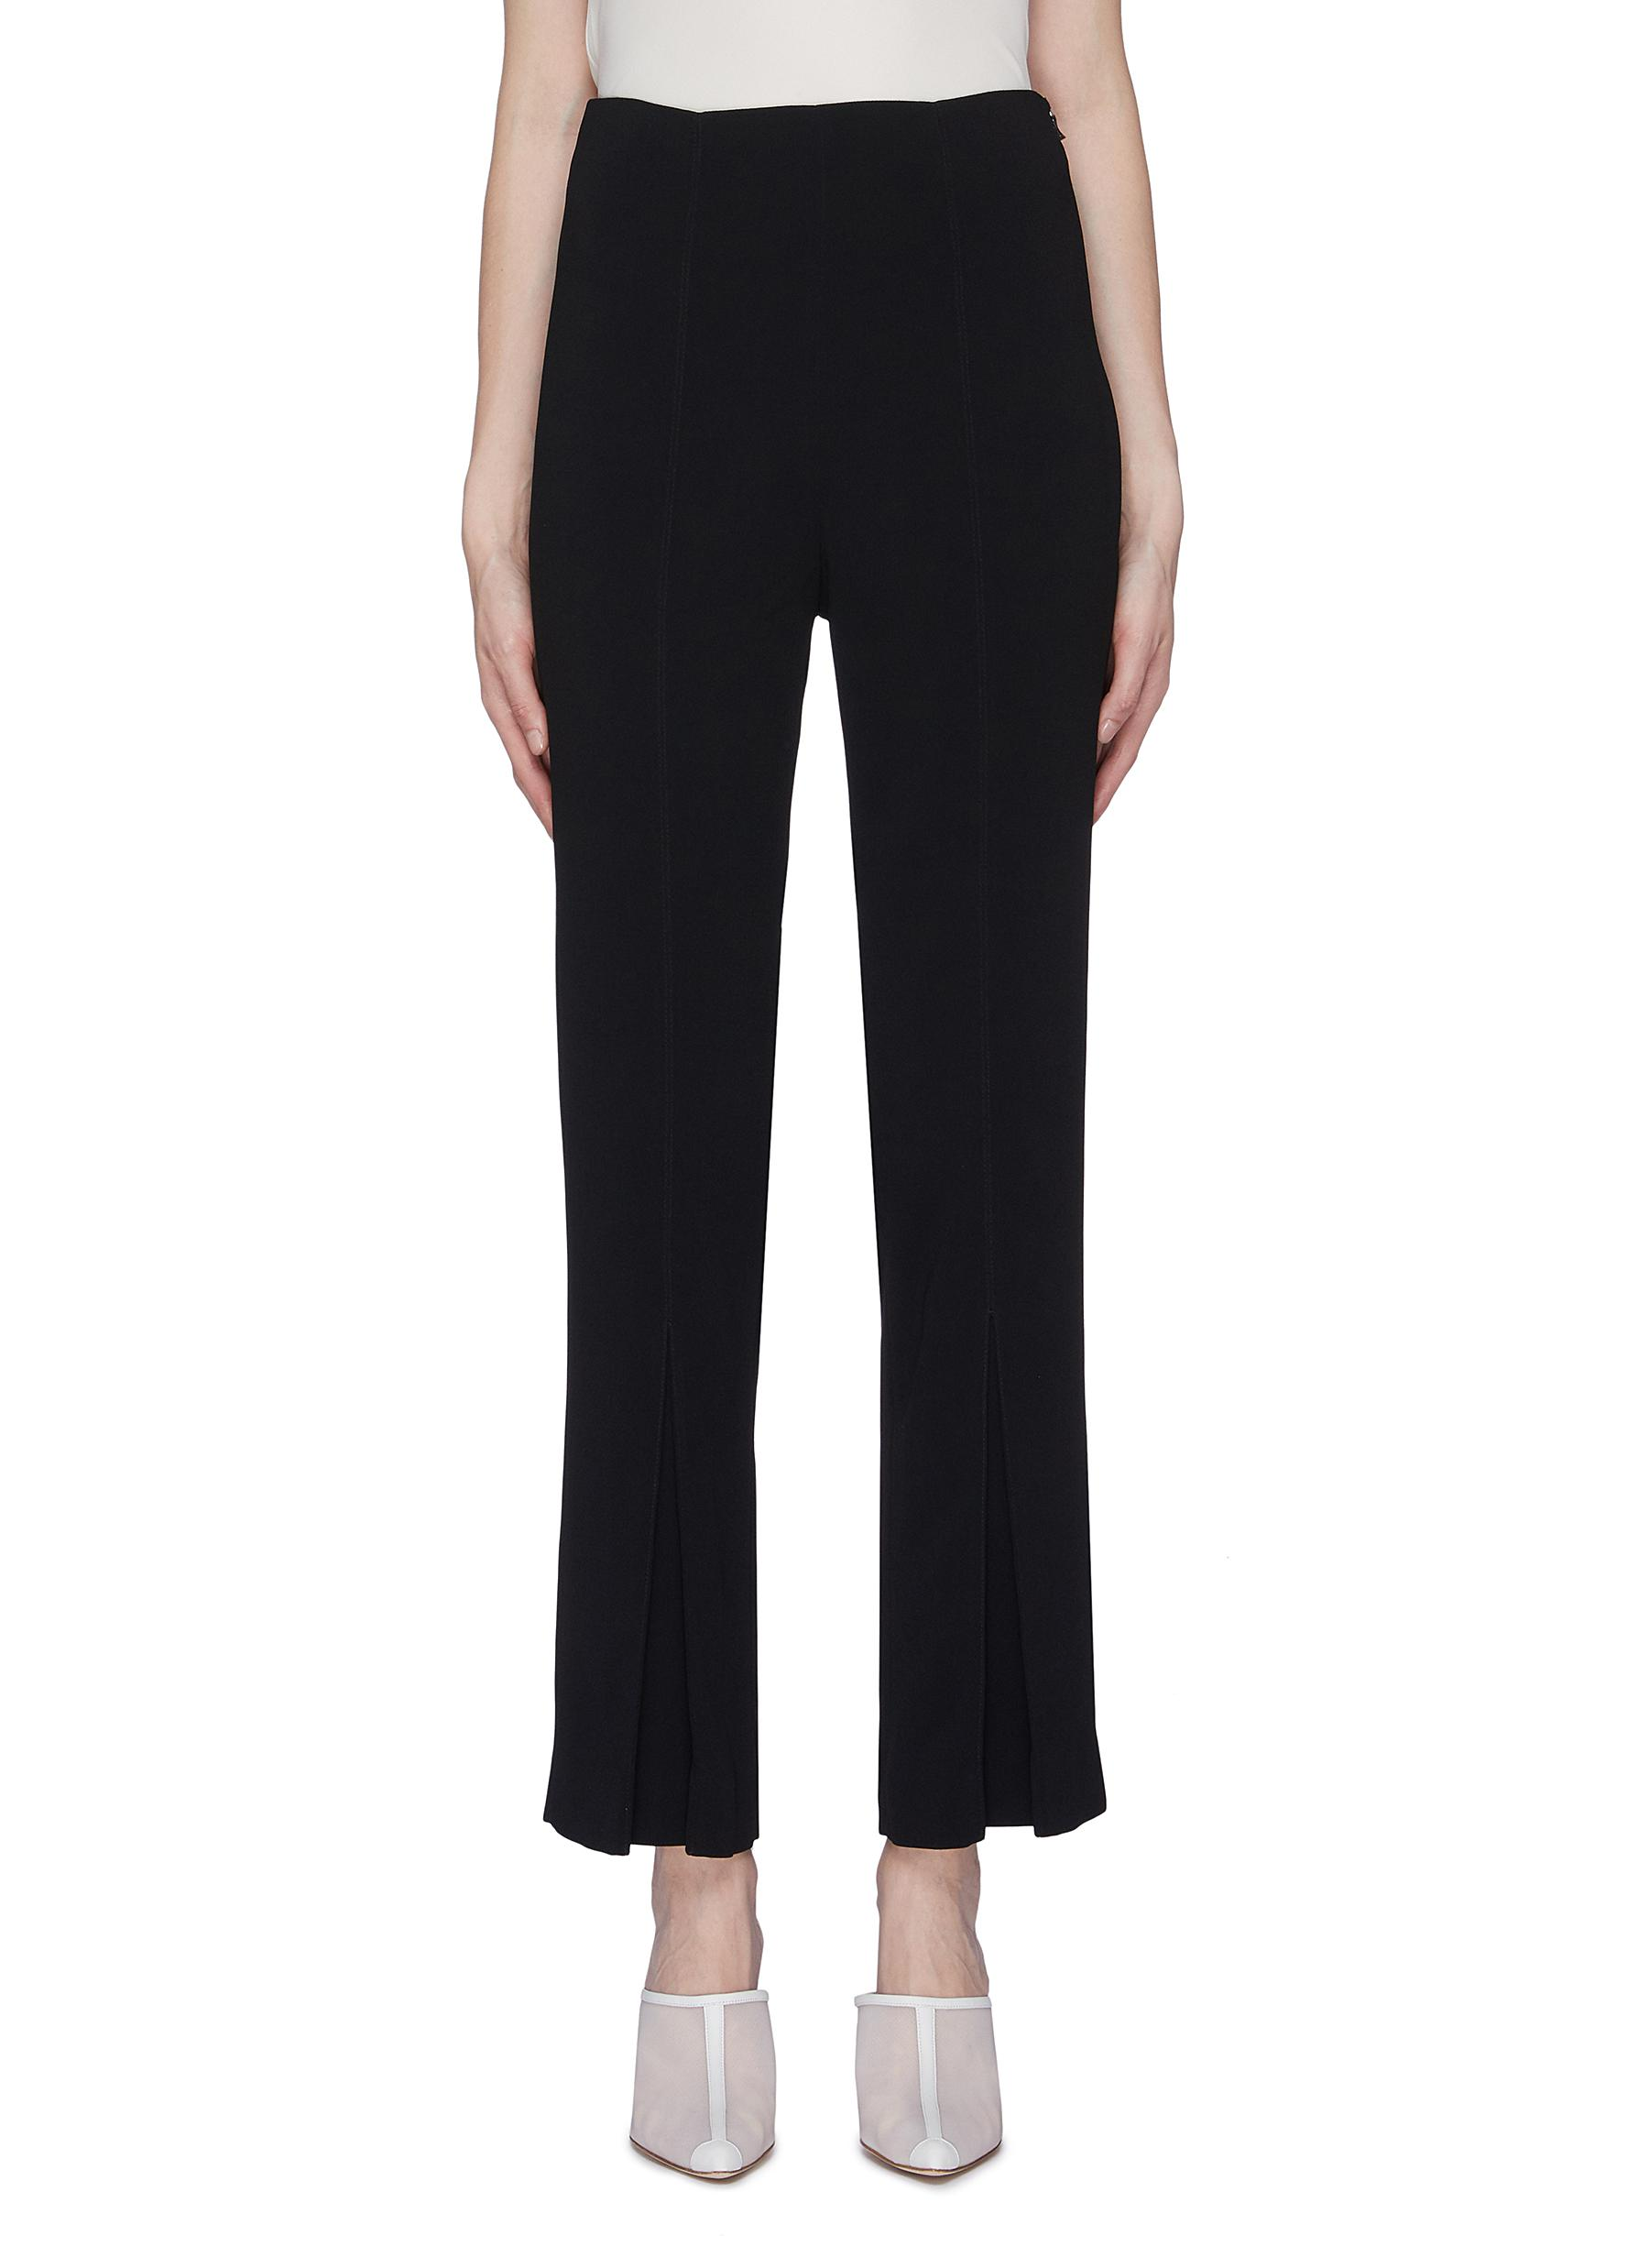 Salthill box pleated cuff pants by Roland Mouret